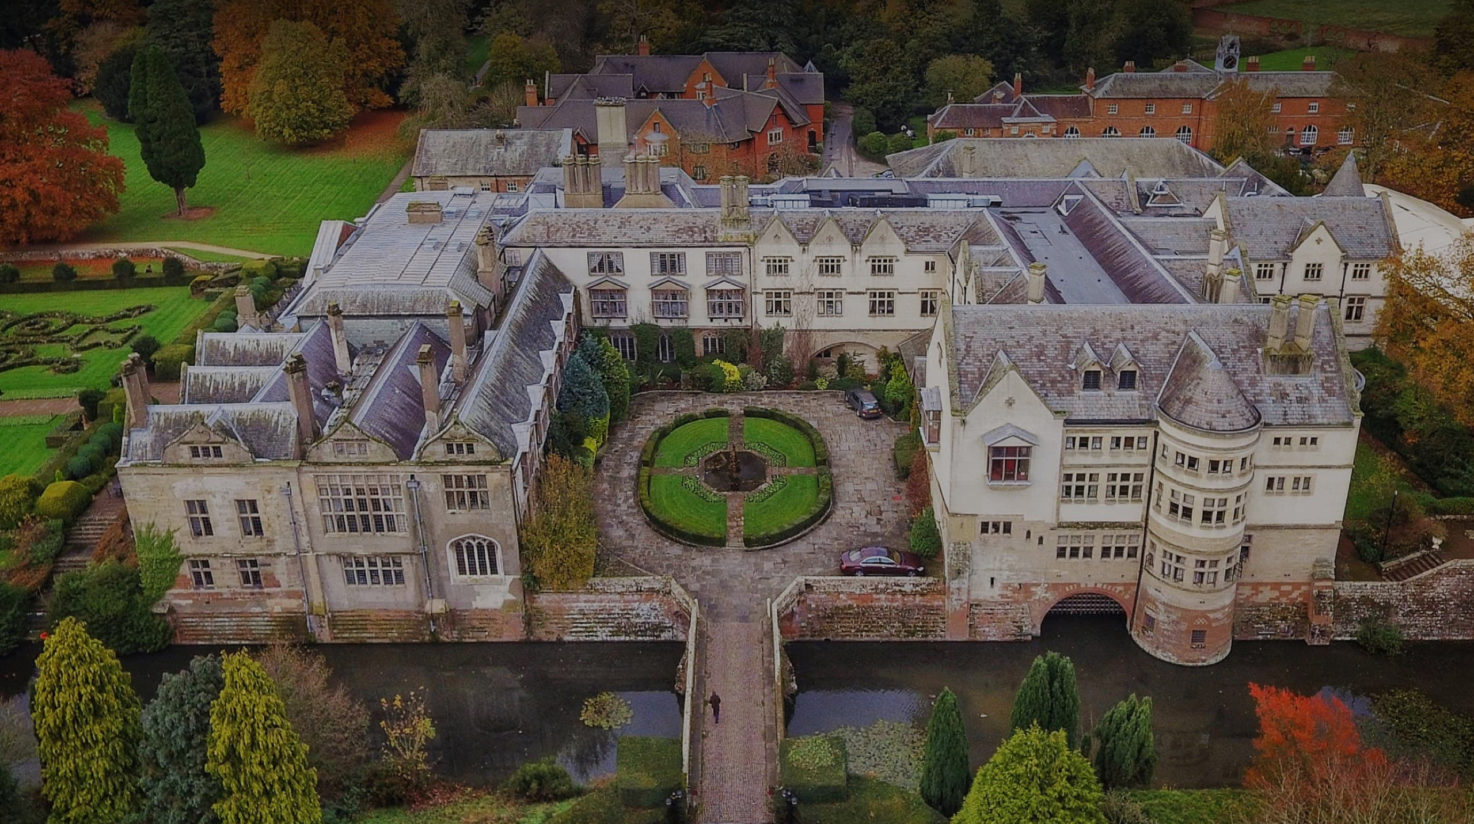 coombe abbey hotel virtual tour